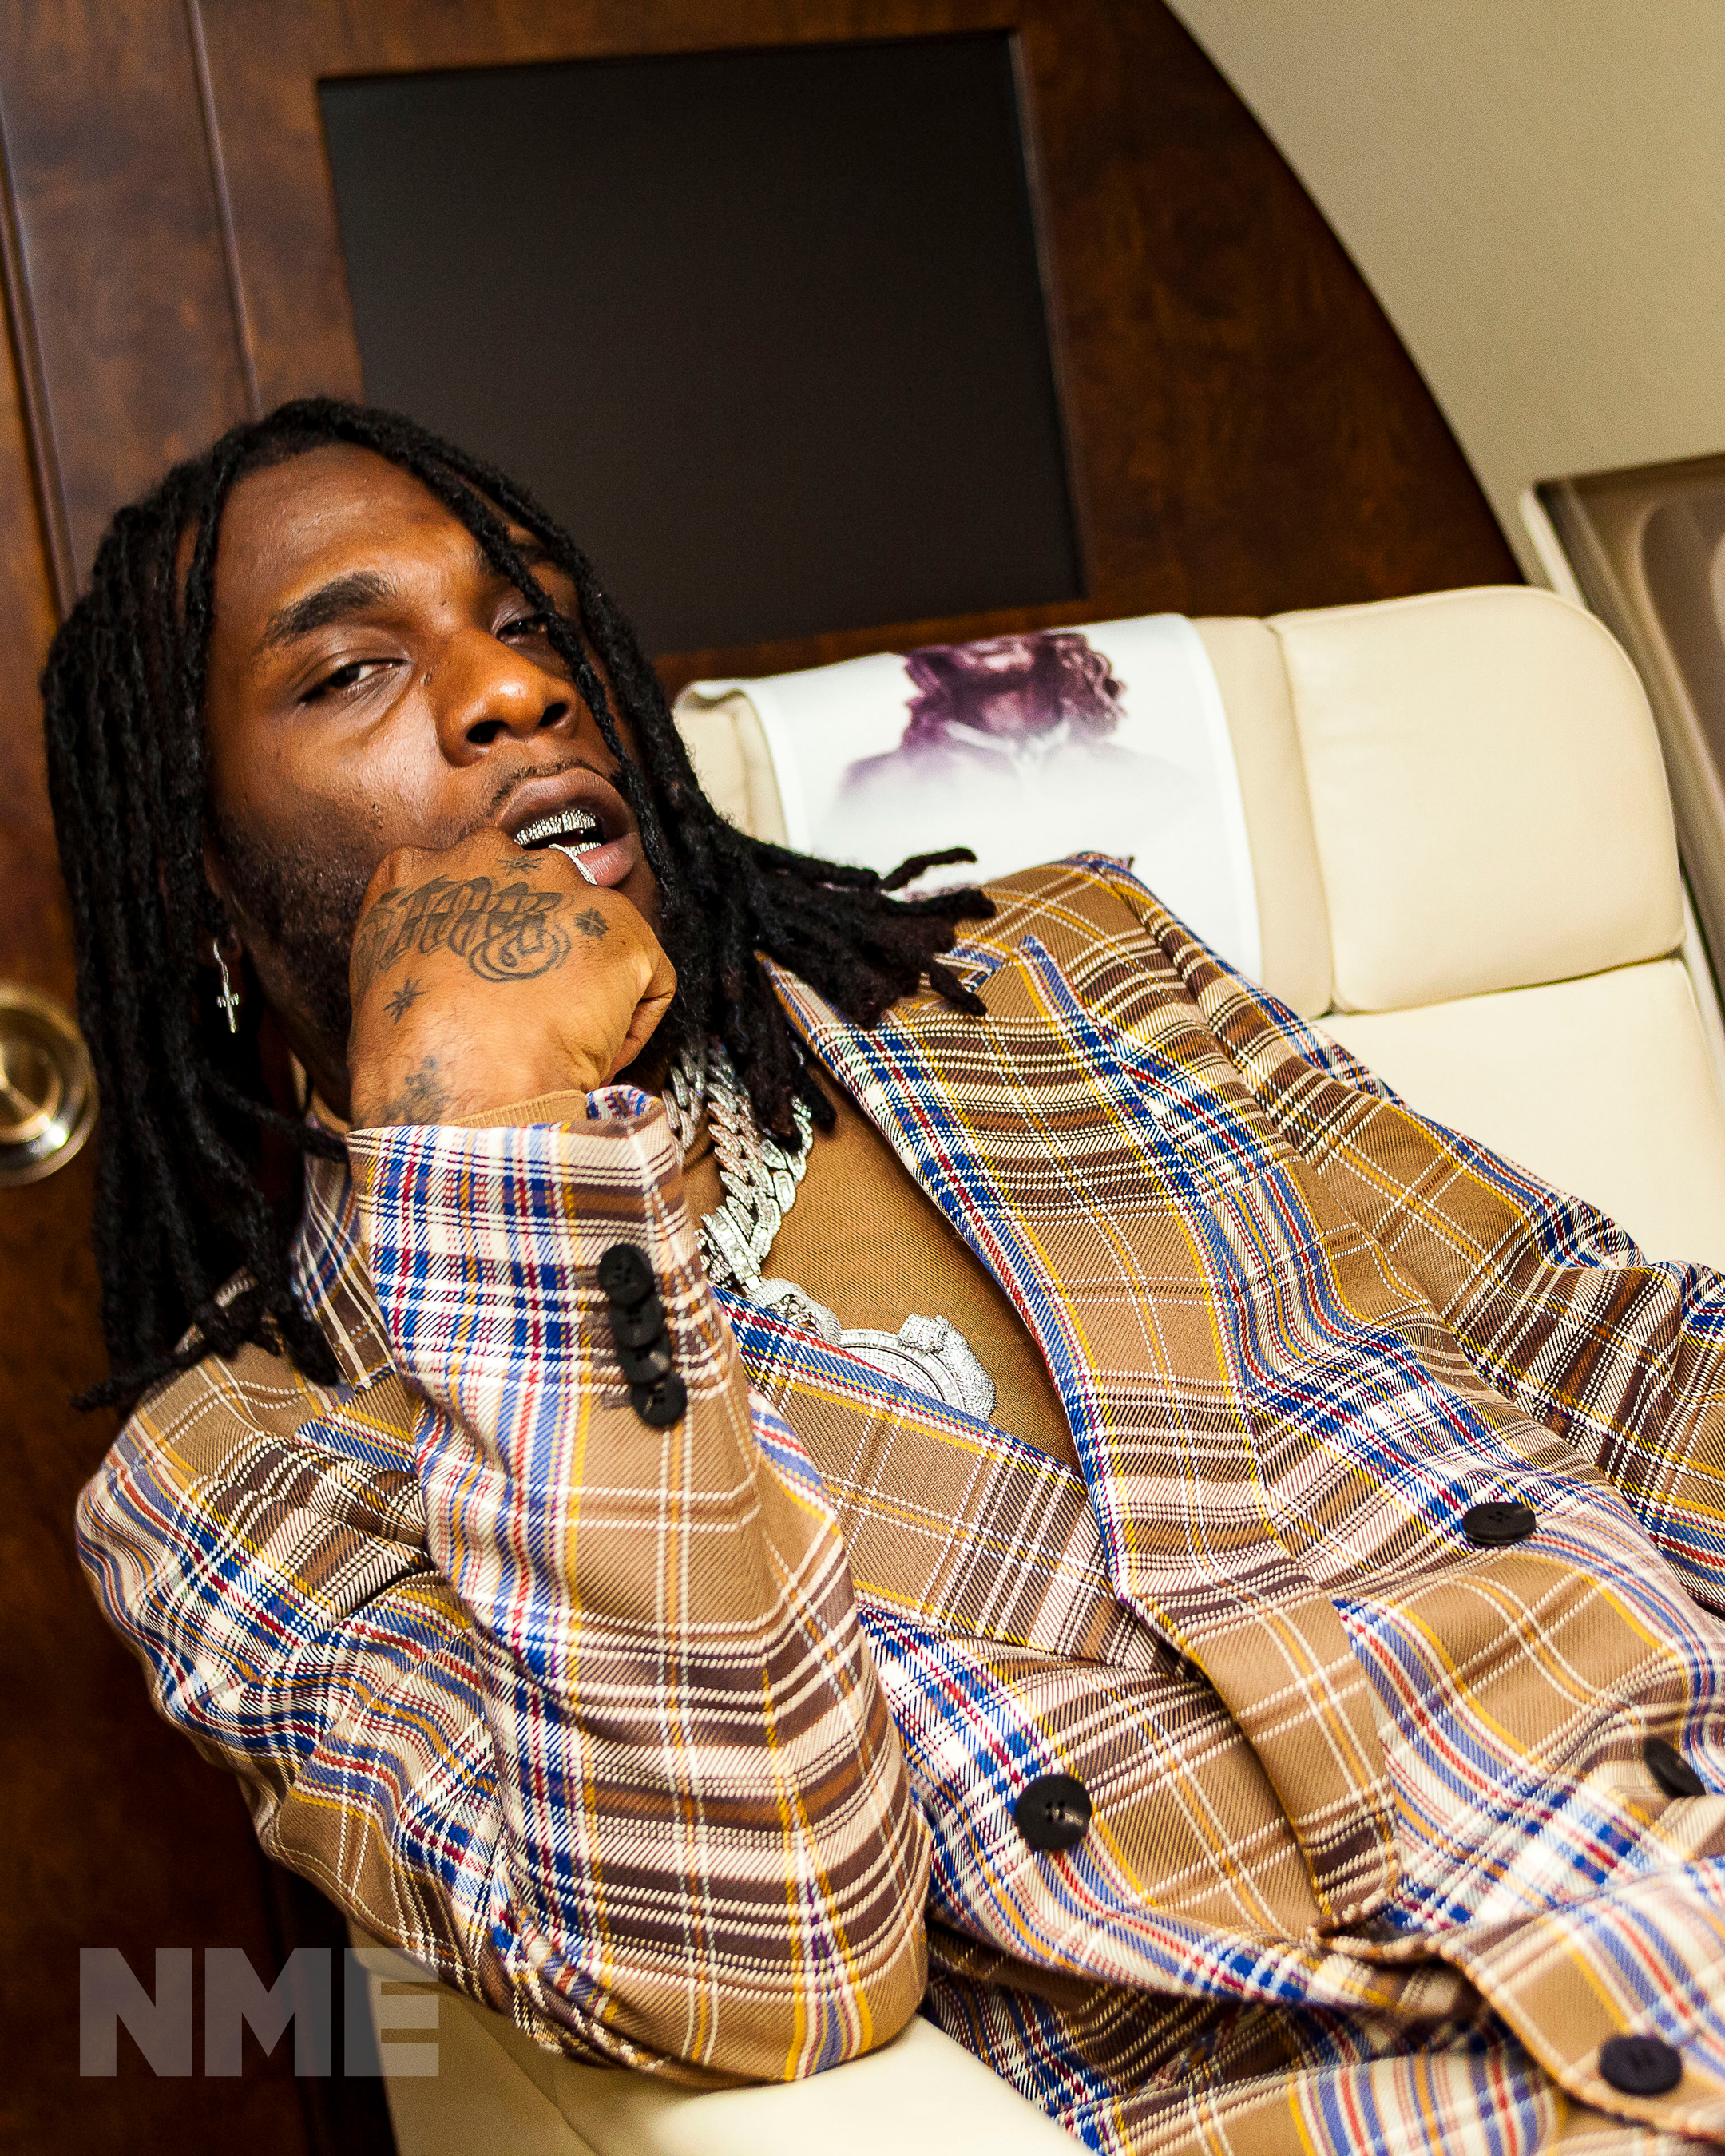 burna boy nme cover interview